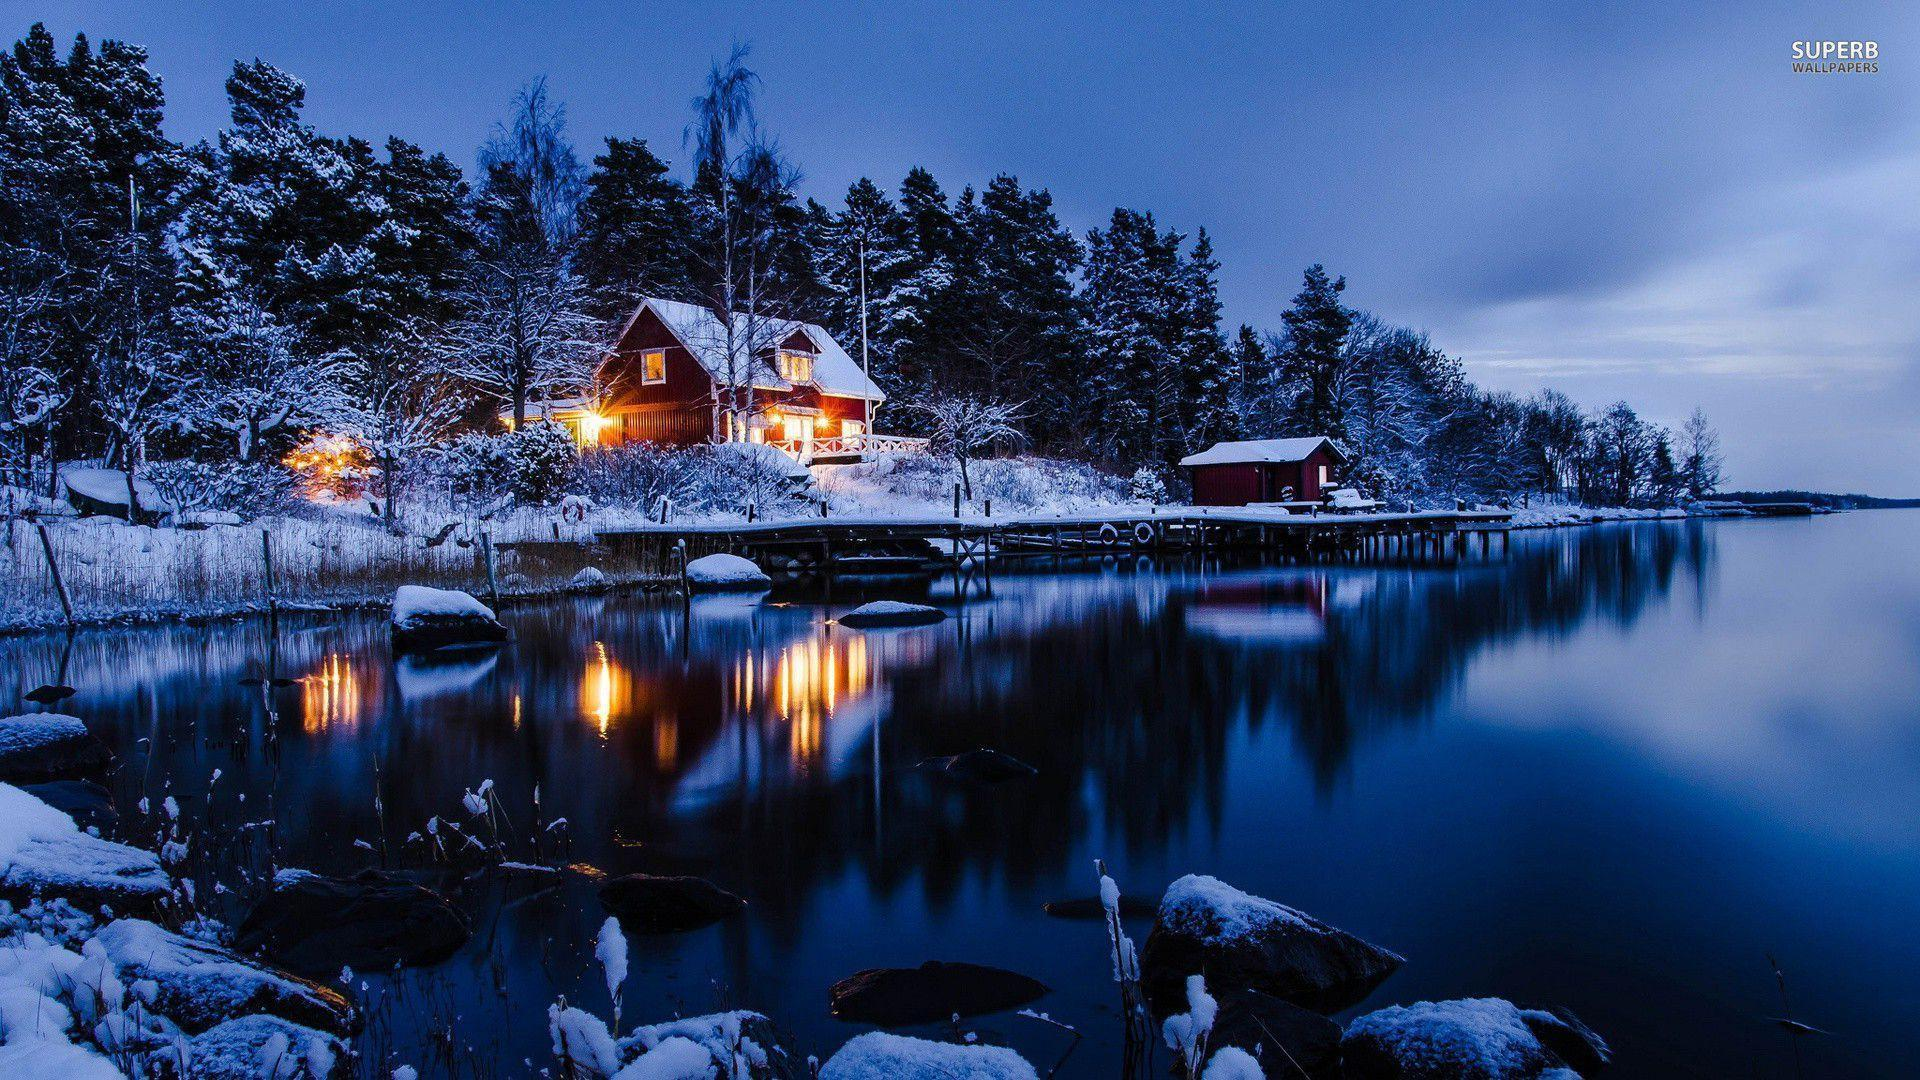 Winter cabin wallpapers wallpaper cave for Lakeview cabin download